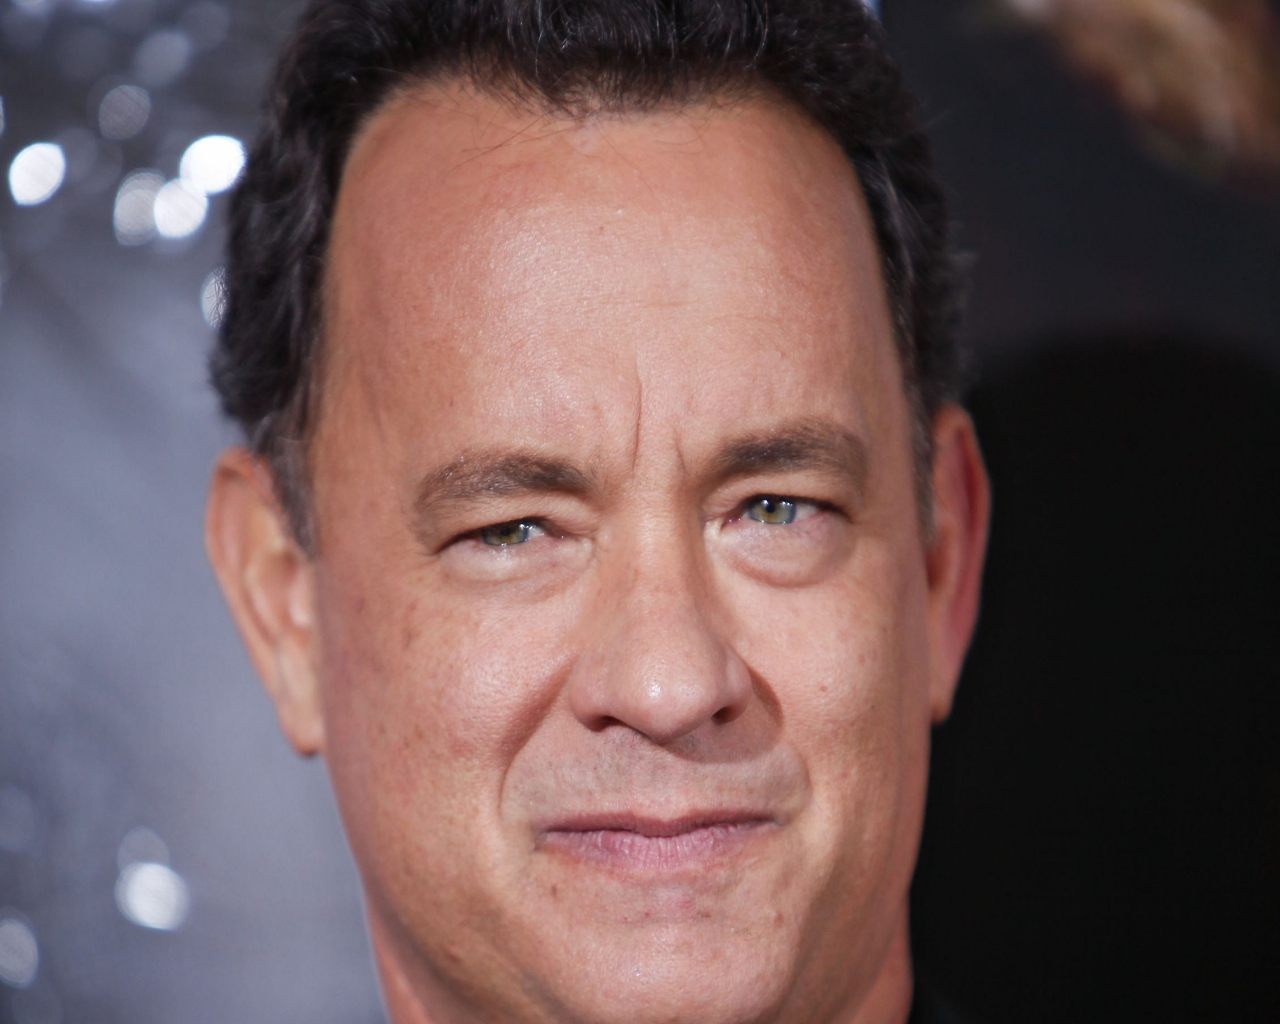 Tom Hanks Hair Tom Hanks Photo Gallery Tom Hanks Photos Tom Hanks